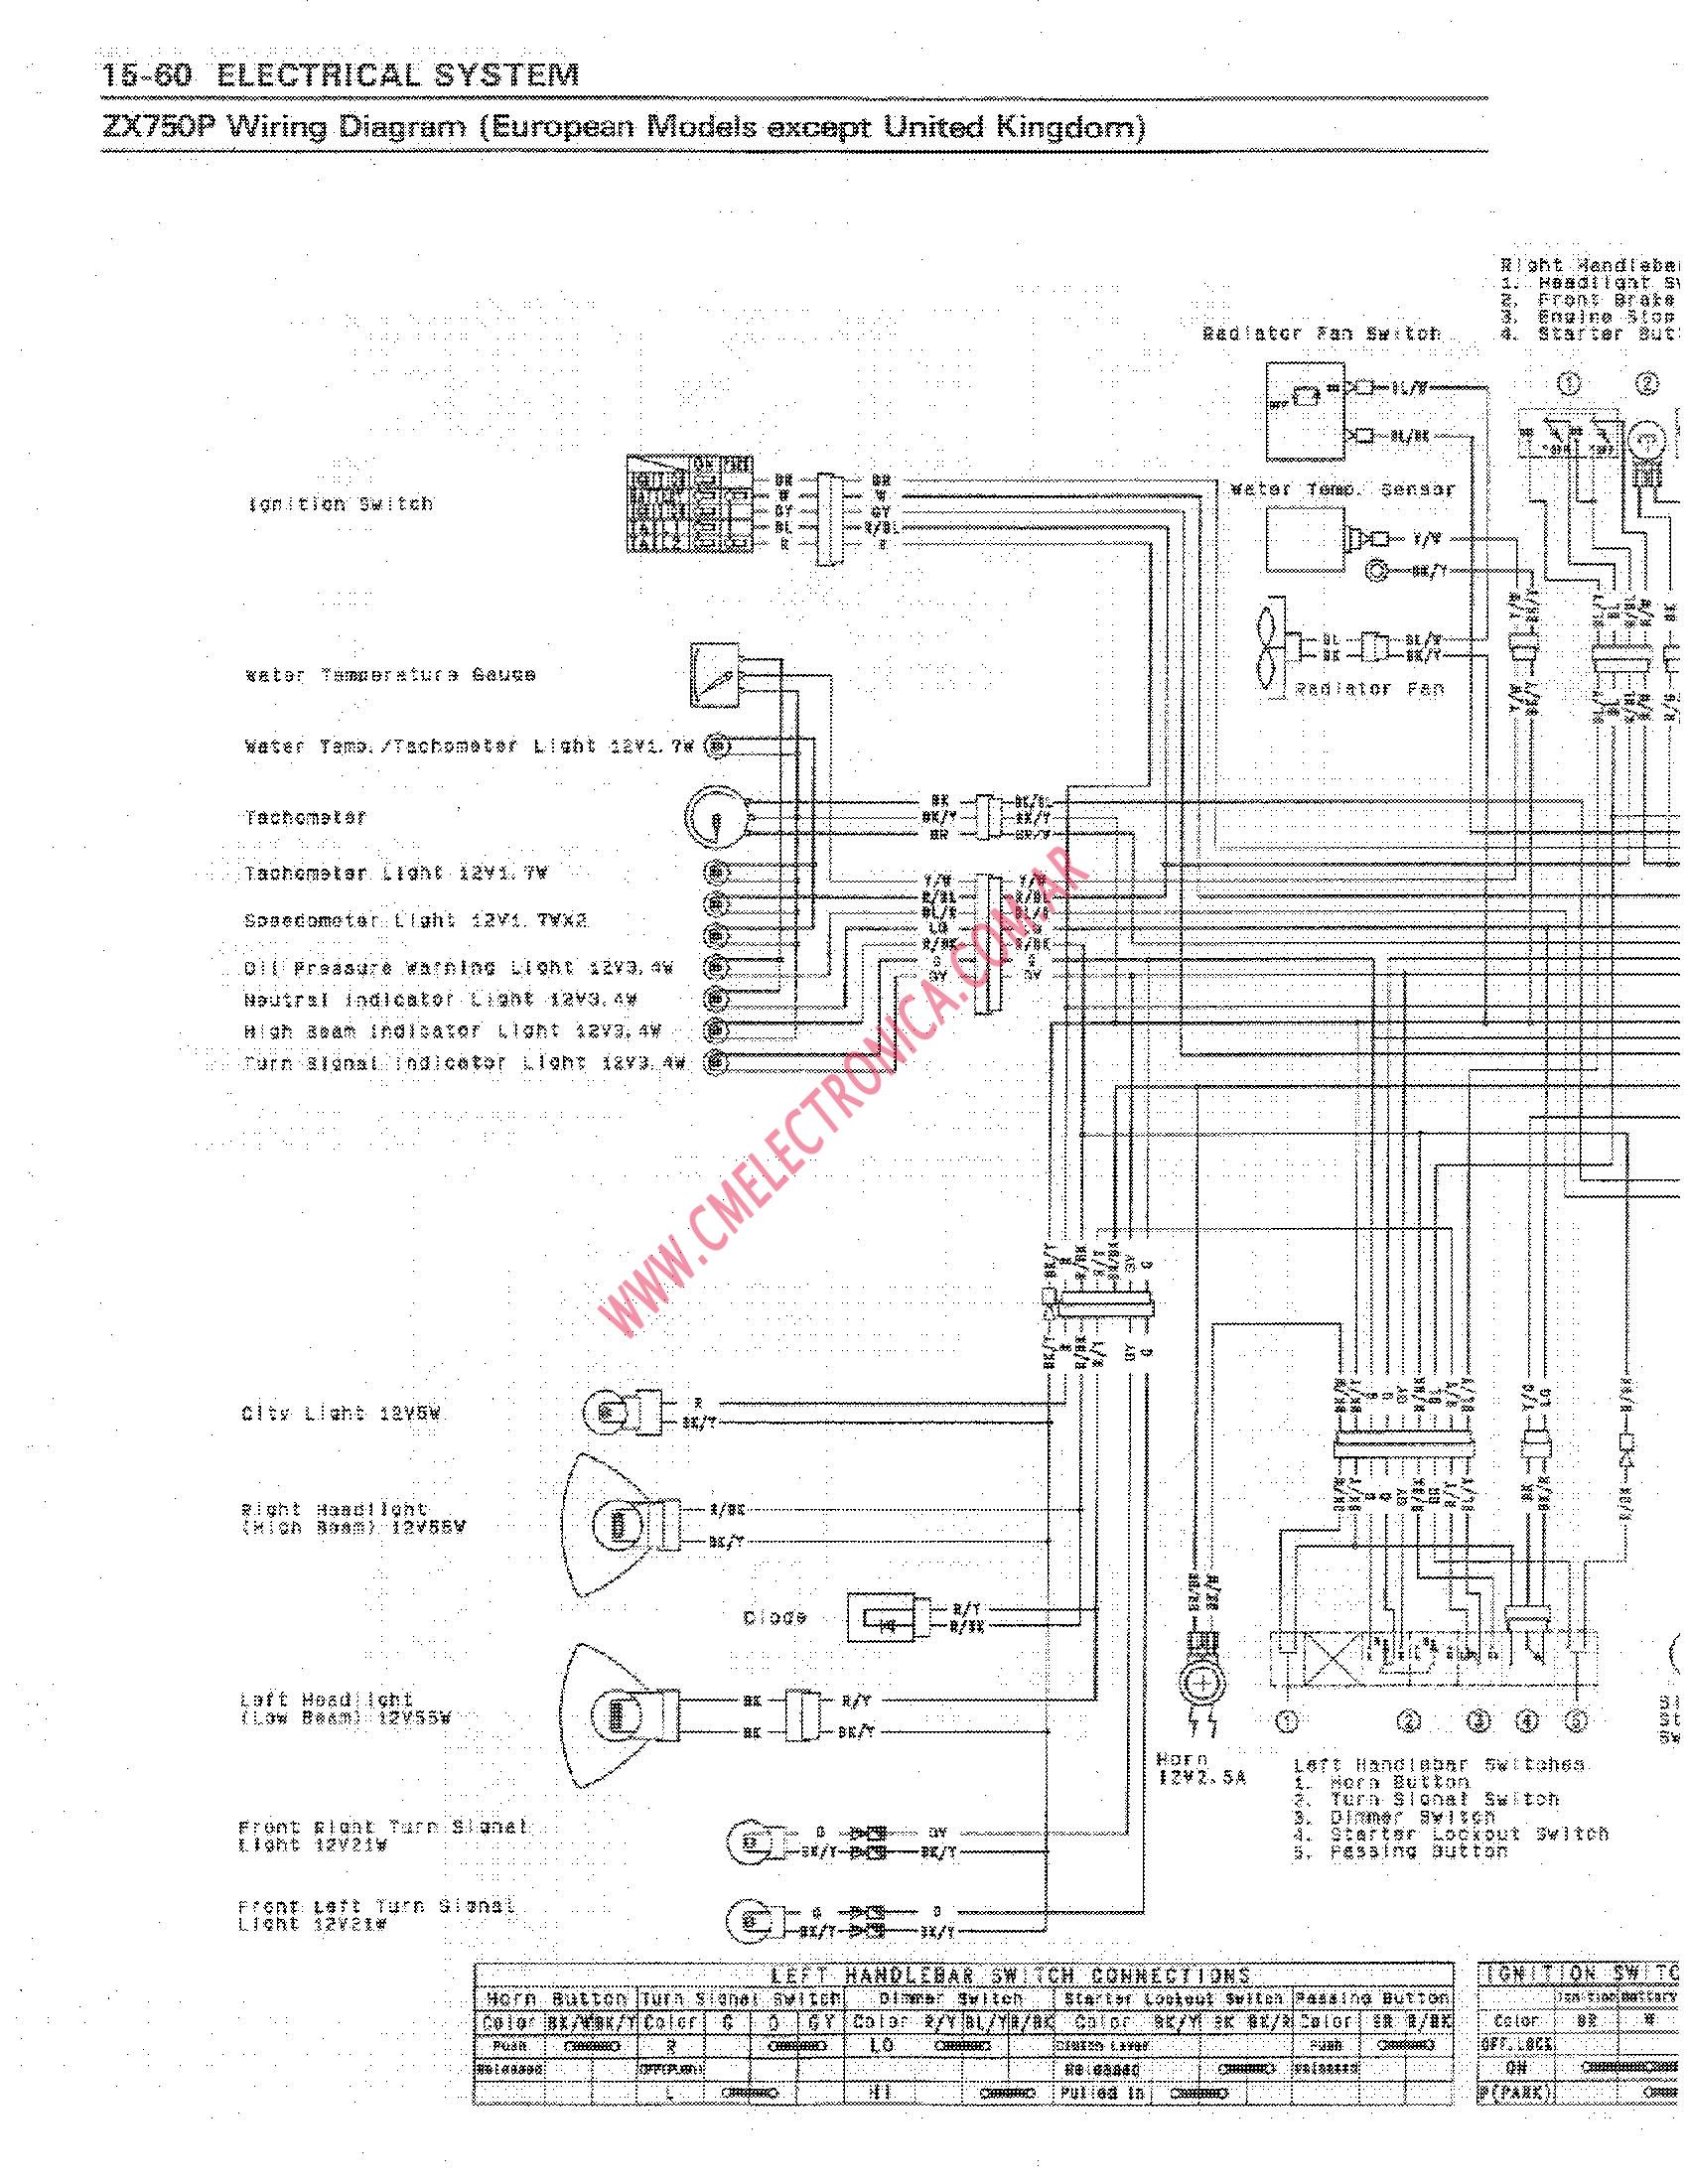 93 zx7 wiring diagram kawasaki zx7 wiring diagram 91 zx7 wiring diagram - wiring diagram #2